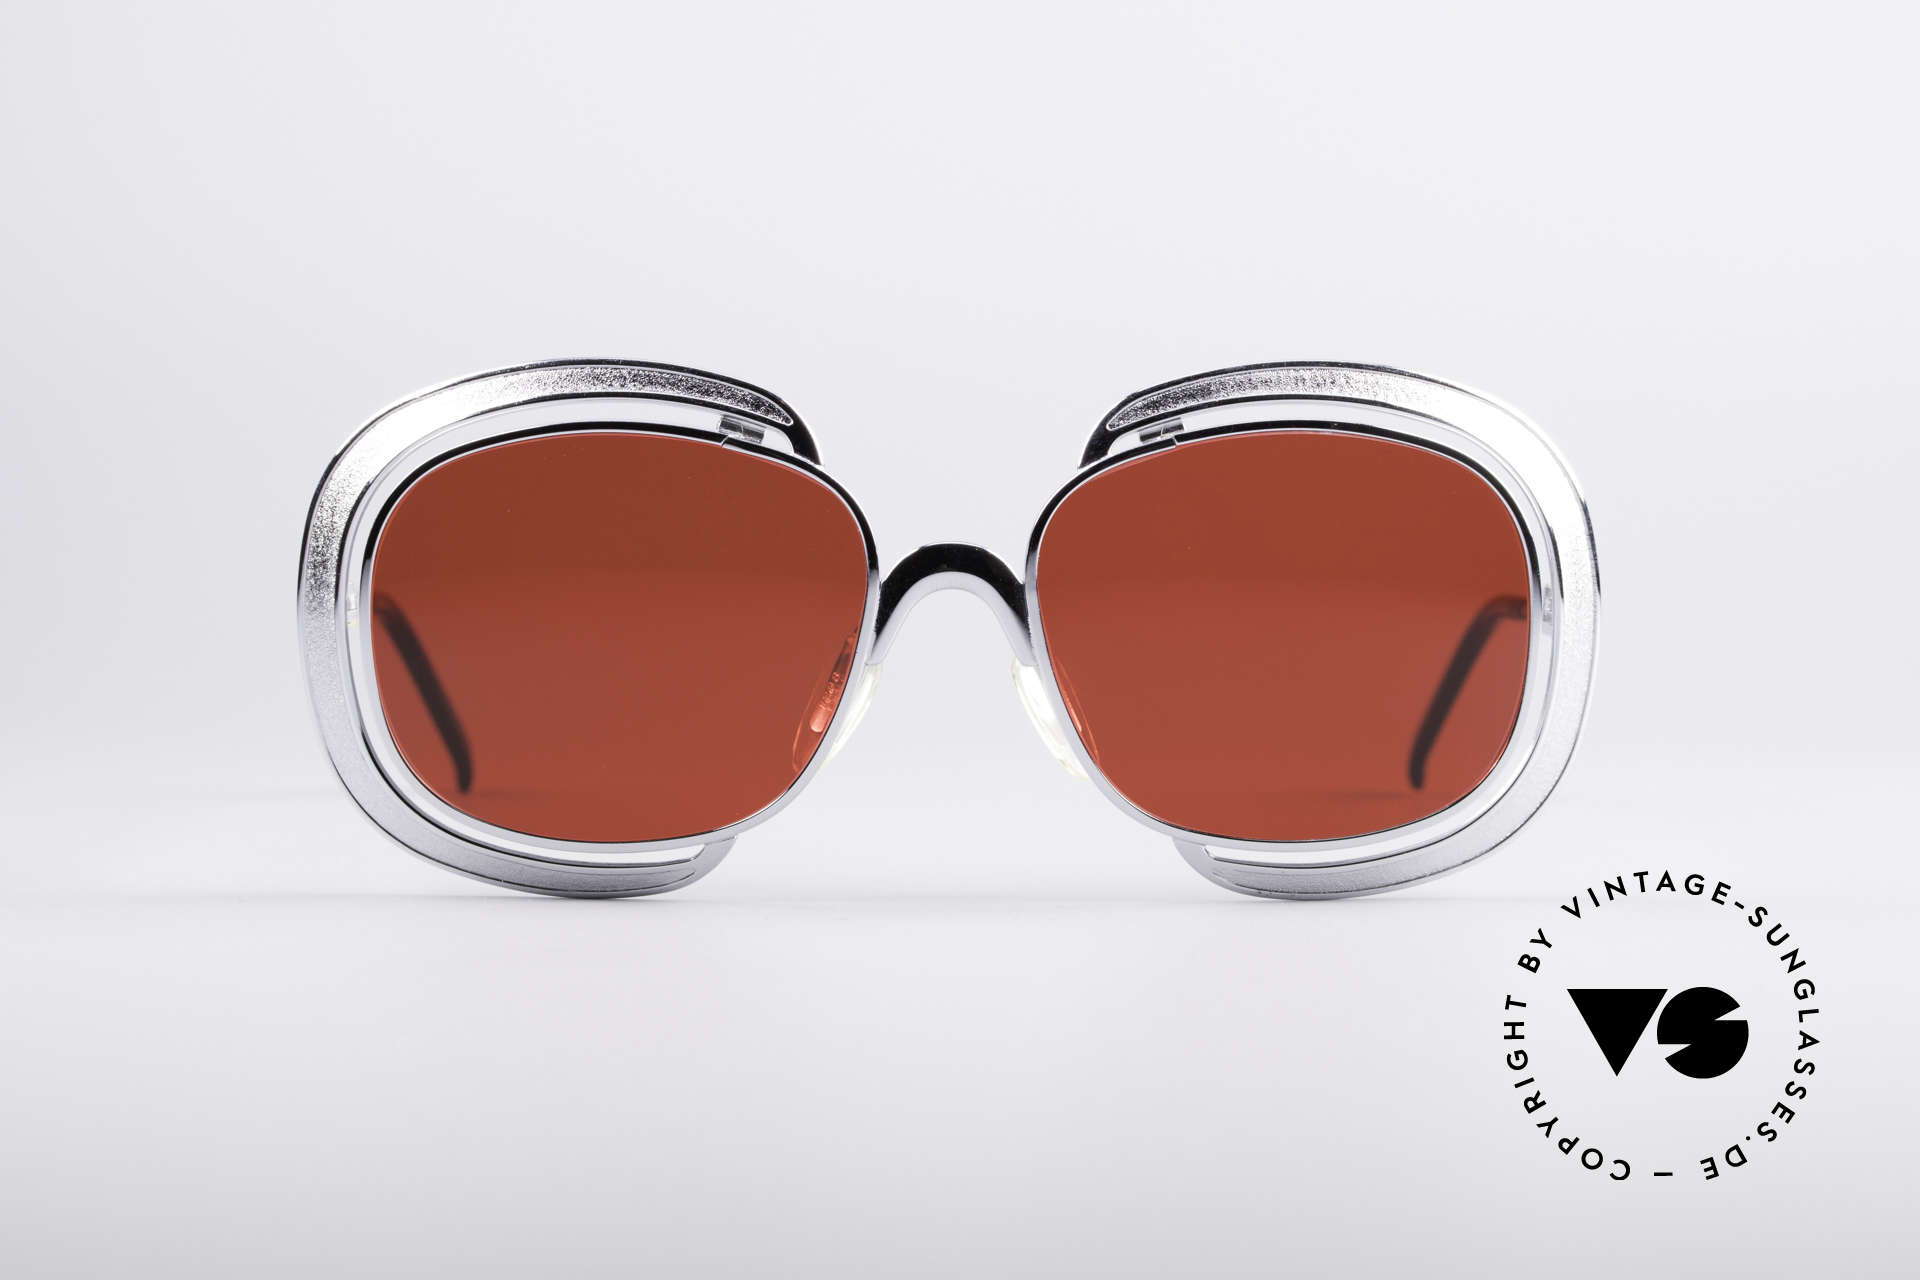 bd13c689455 You may also like these glasses. Christian Dior ...